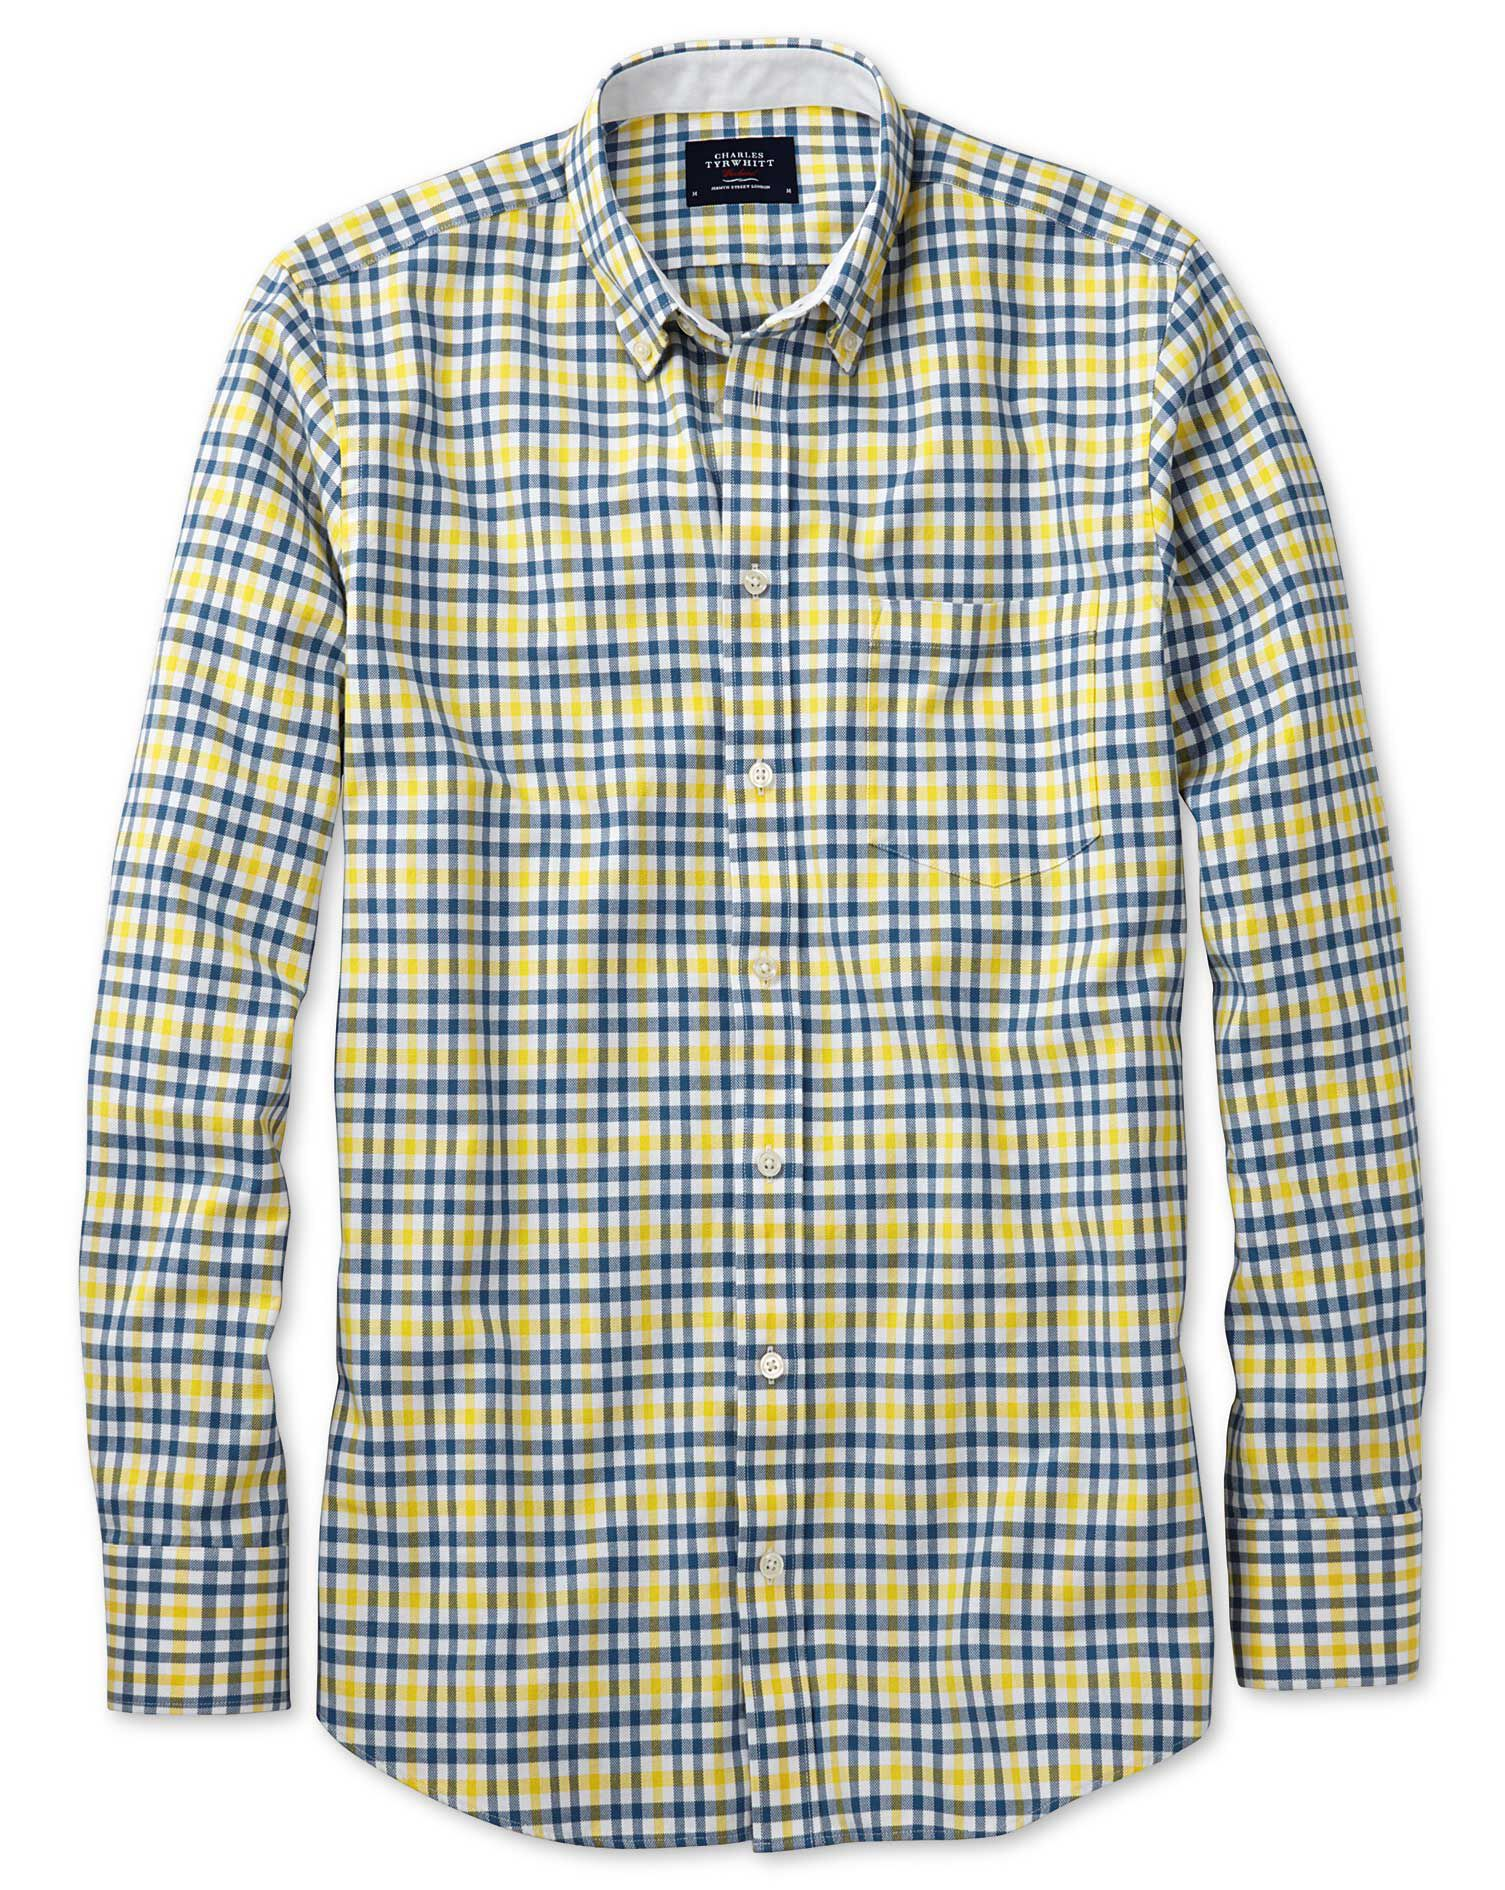 Extra Slim Fit Blue and Yellow Check Washed Oxford Cotton Shirt Single Cuff Size Medium by Charles T